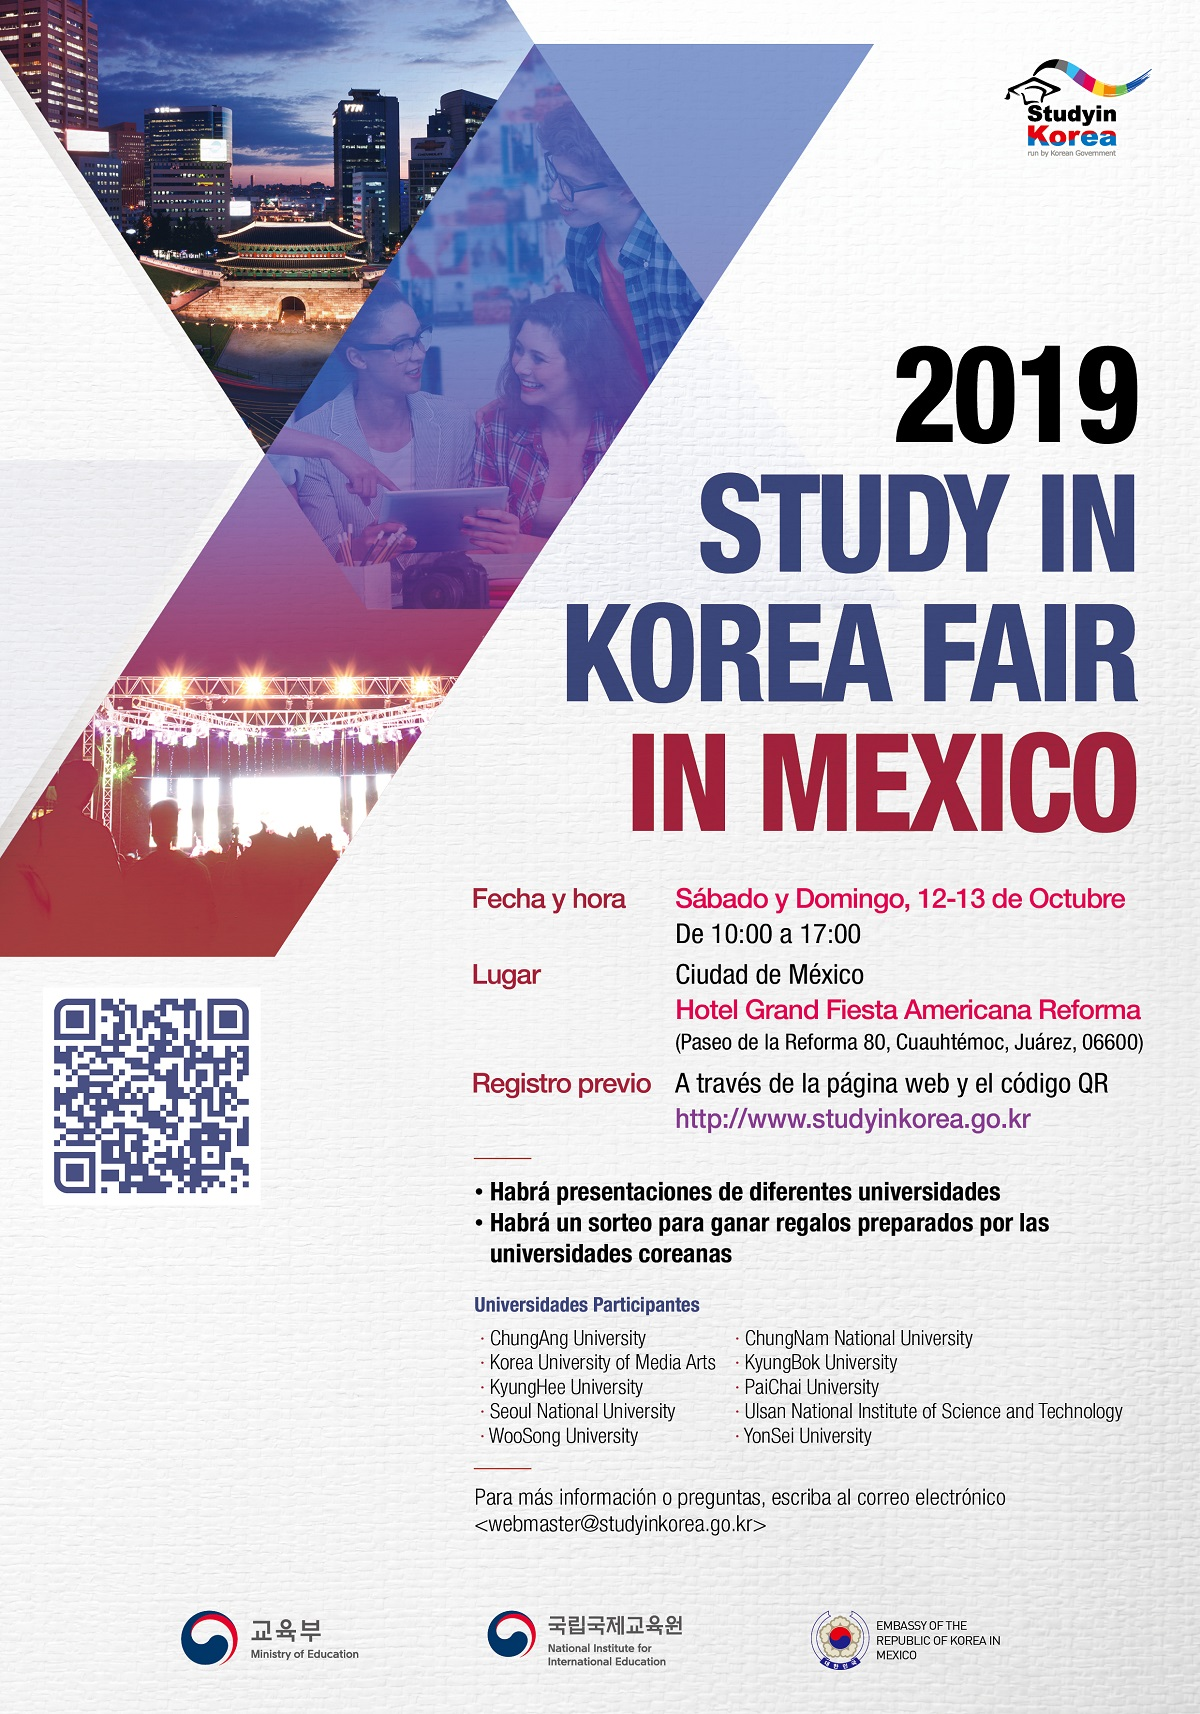 2019 STUDY IN KOREA FAIR IN MEXICO 소개 사진